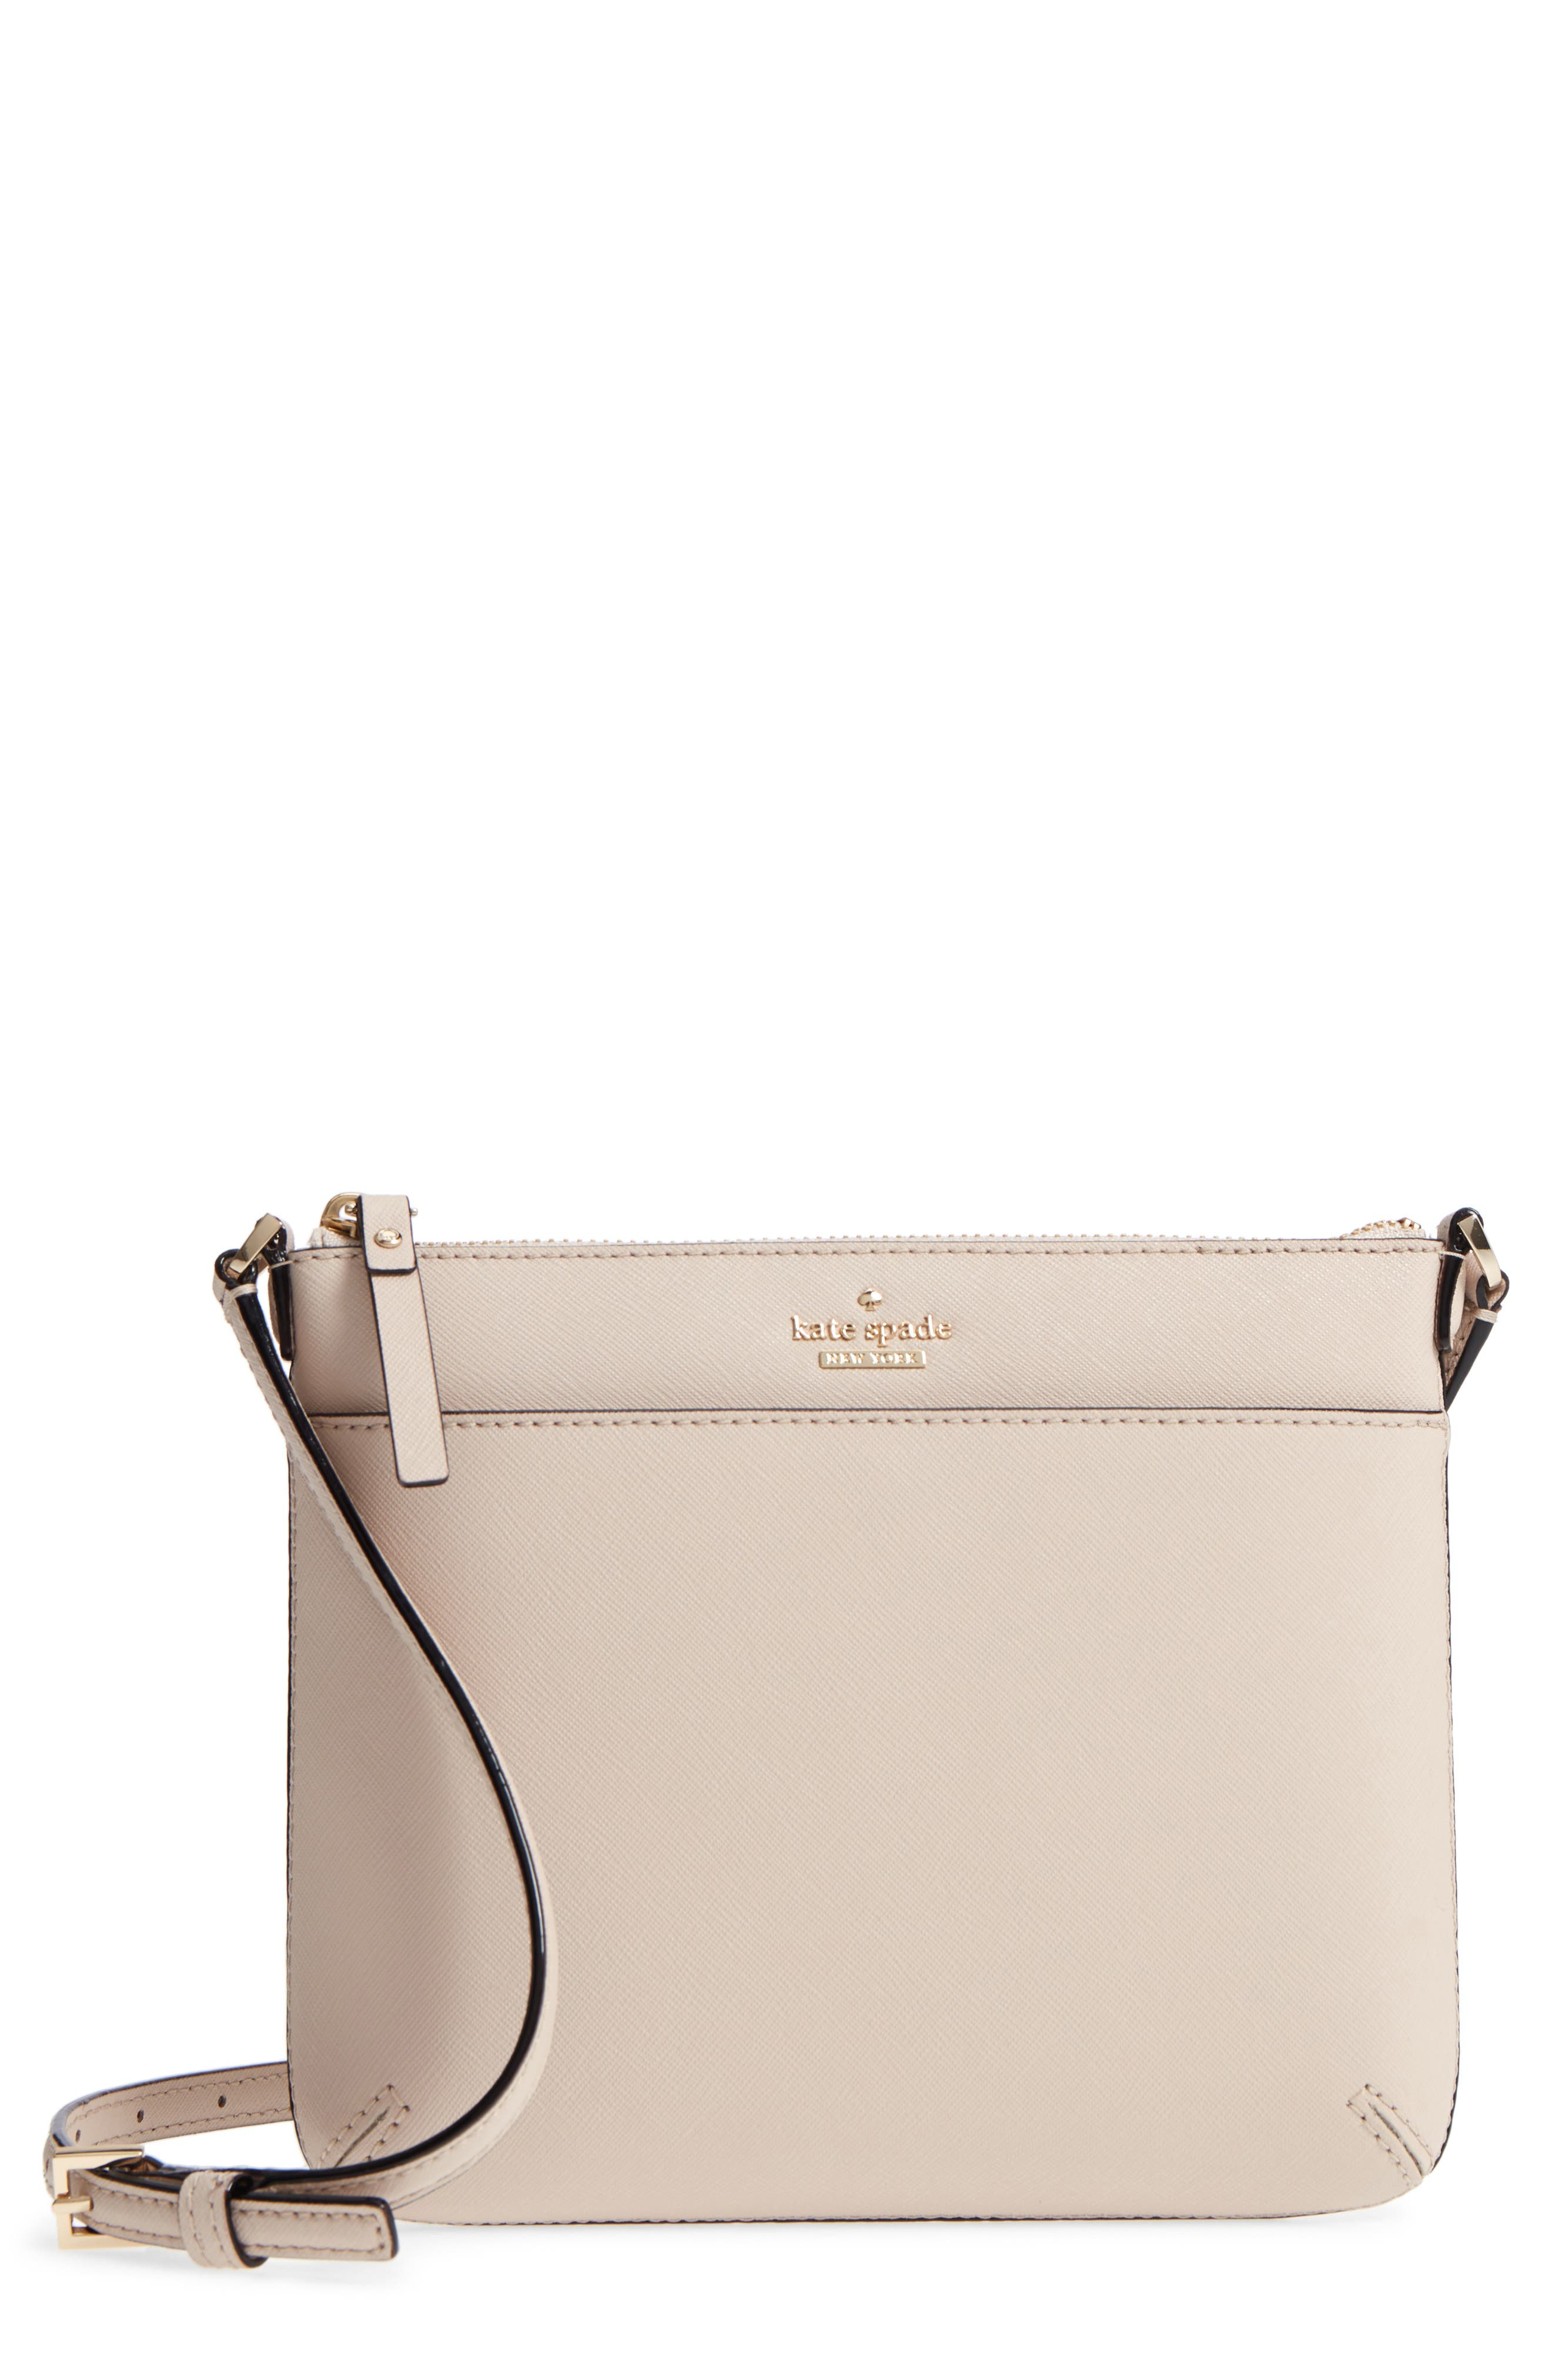 cameron street - tenley leather crossbody bag,                         Main,                         color, 260